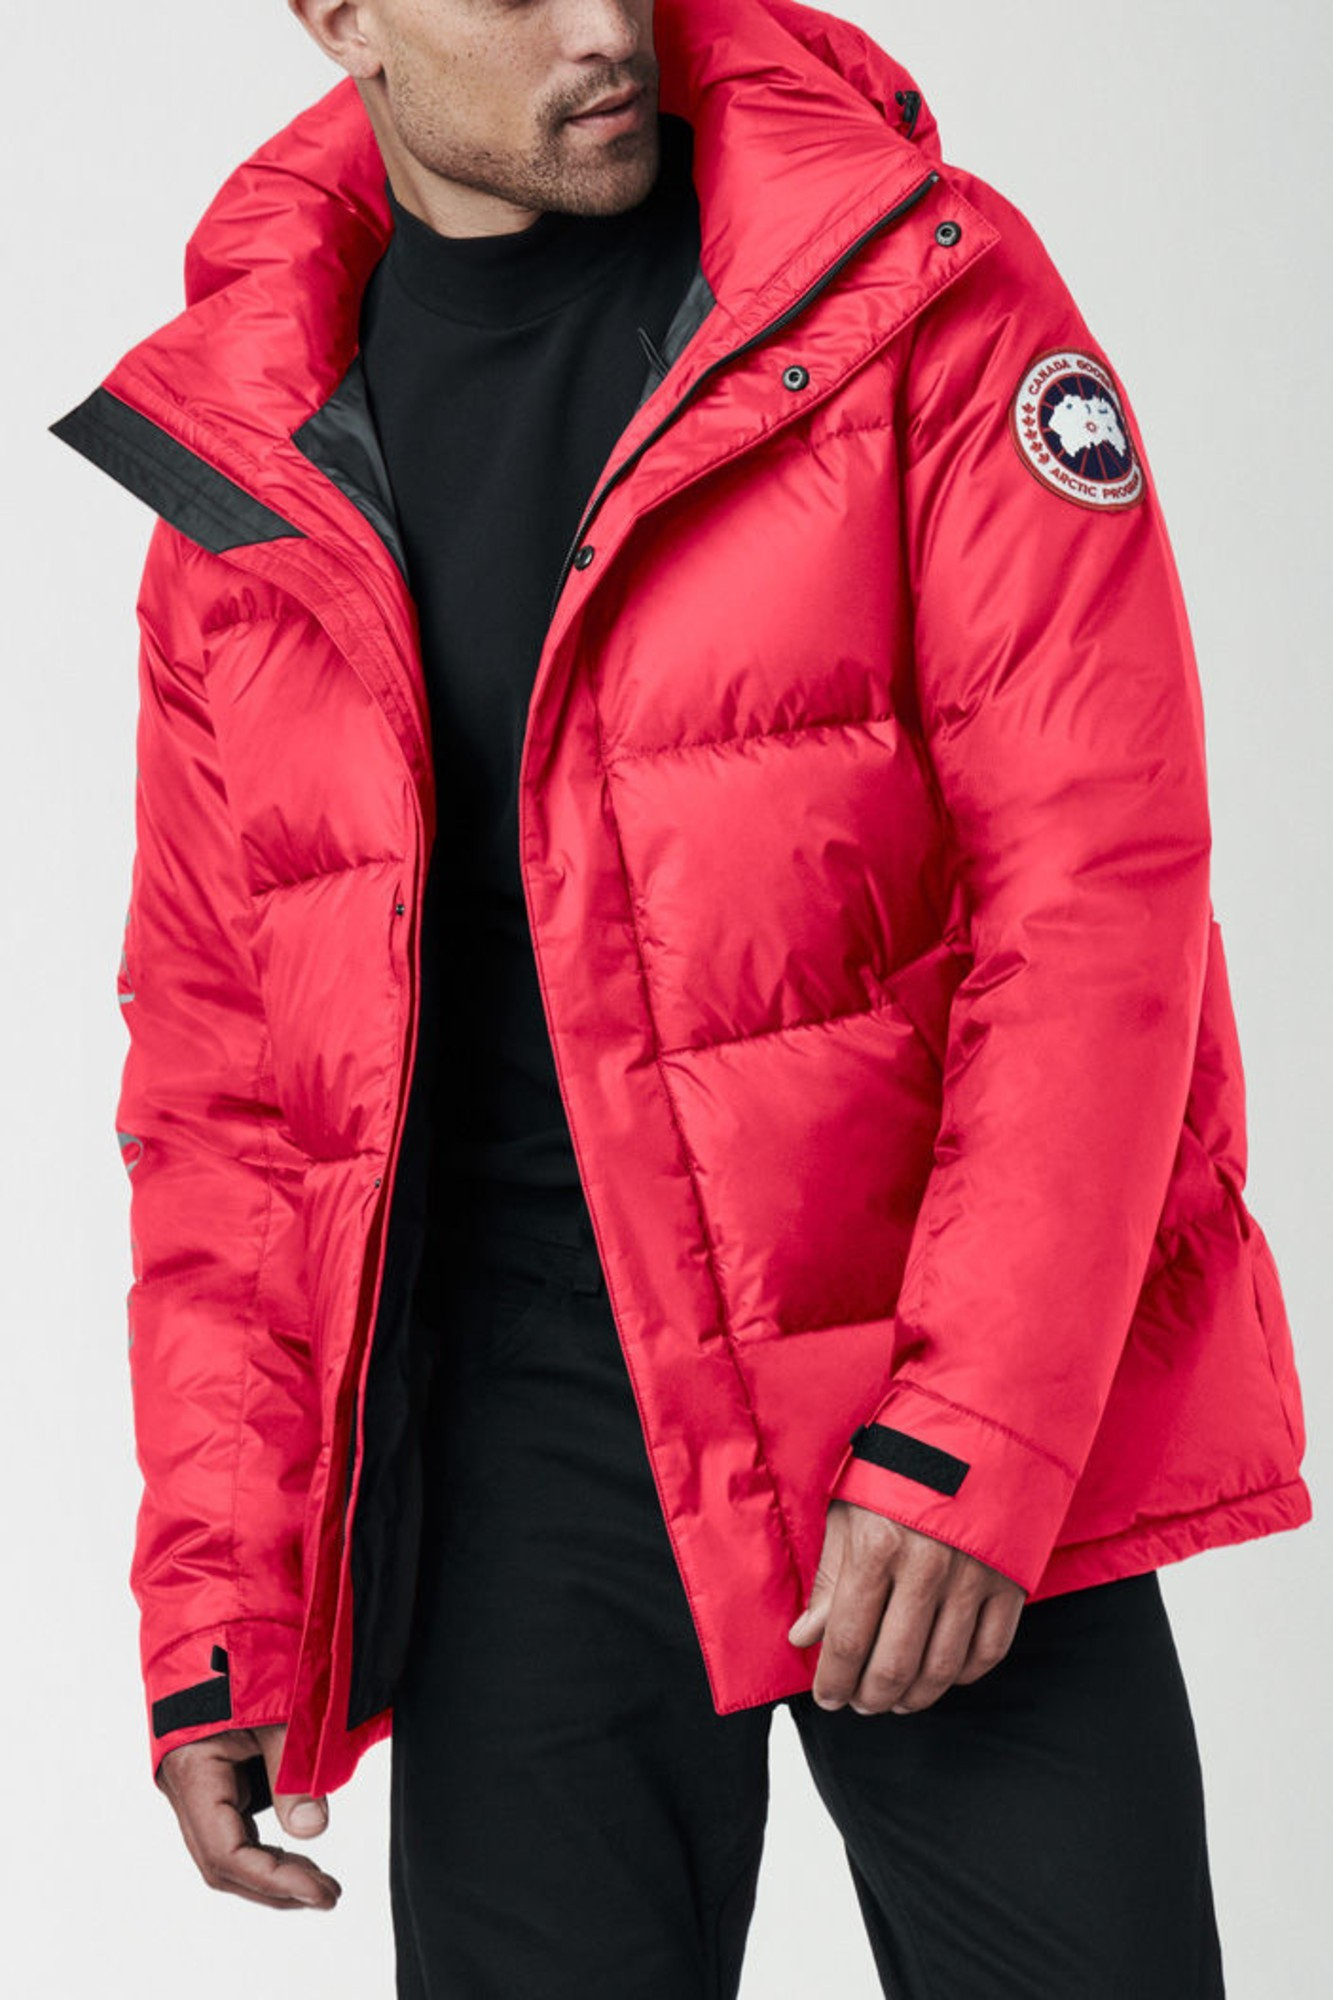 Approach Jacket Red 3887